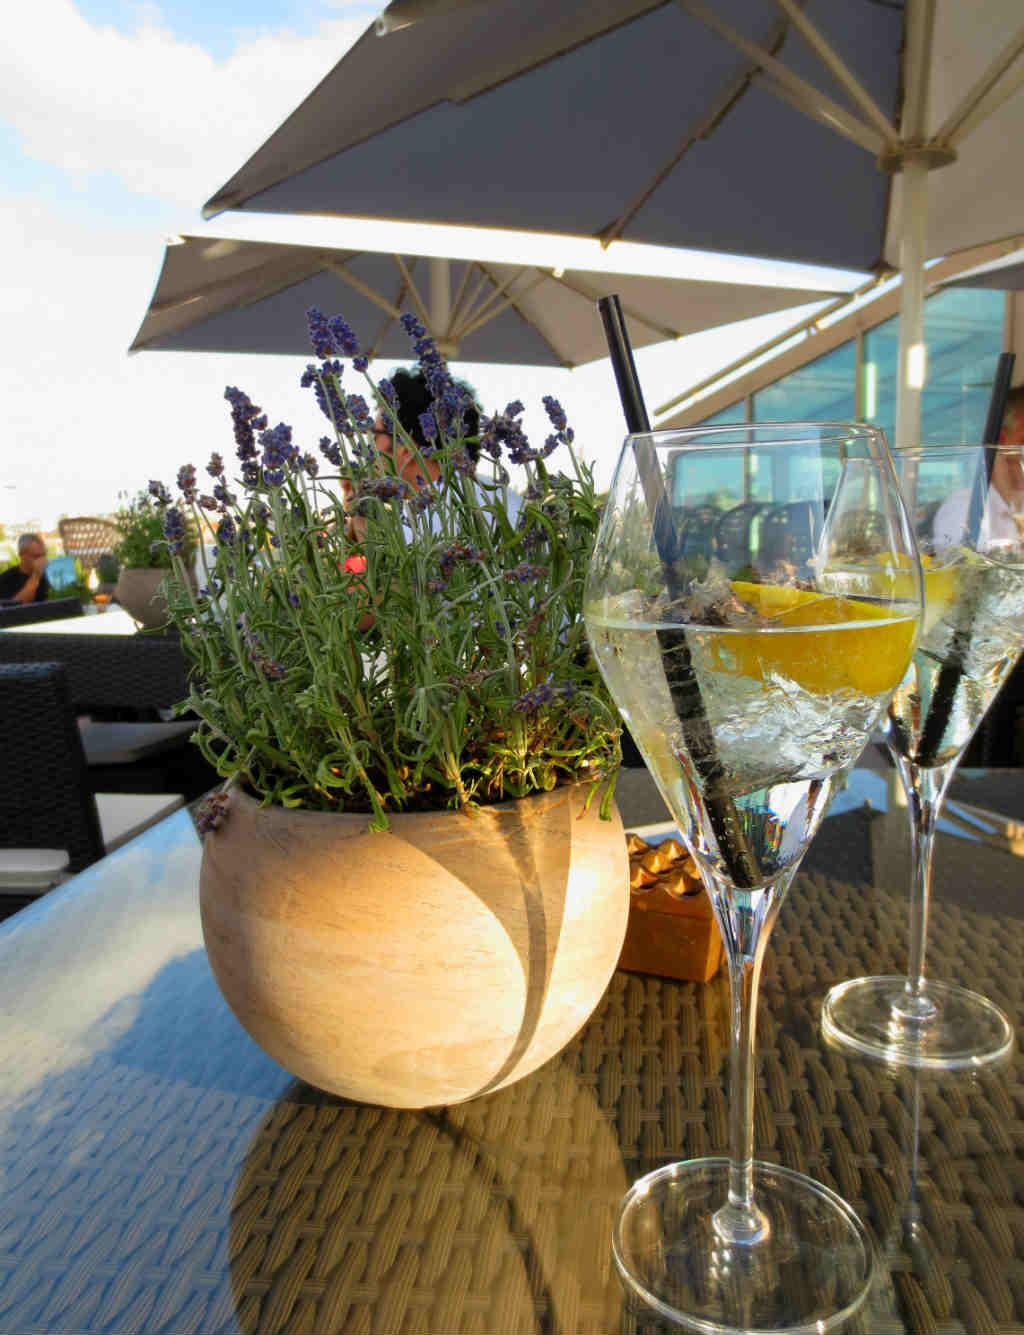 Spritz-at-Ritz-rooftop-bar-Vienna-LadyTravelGuide